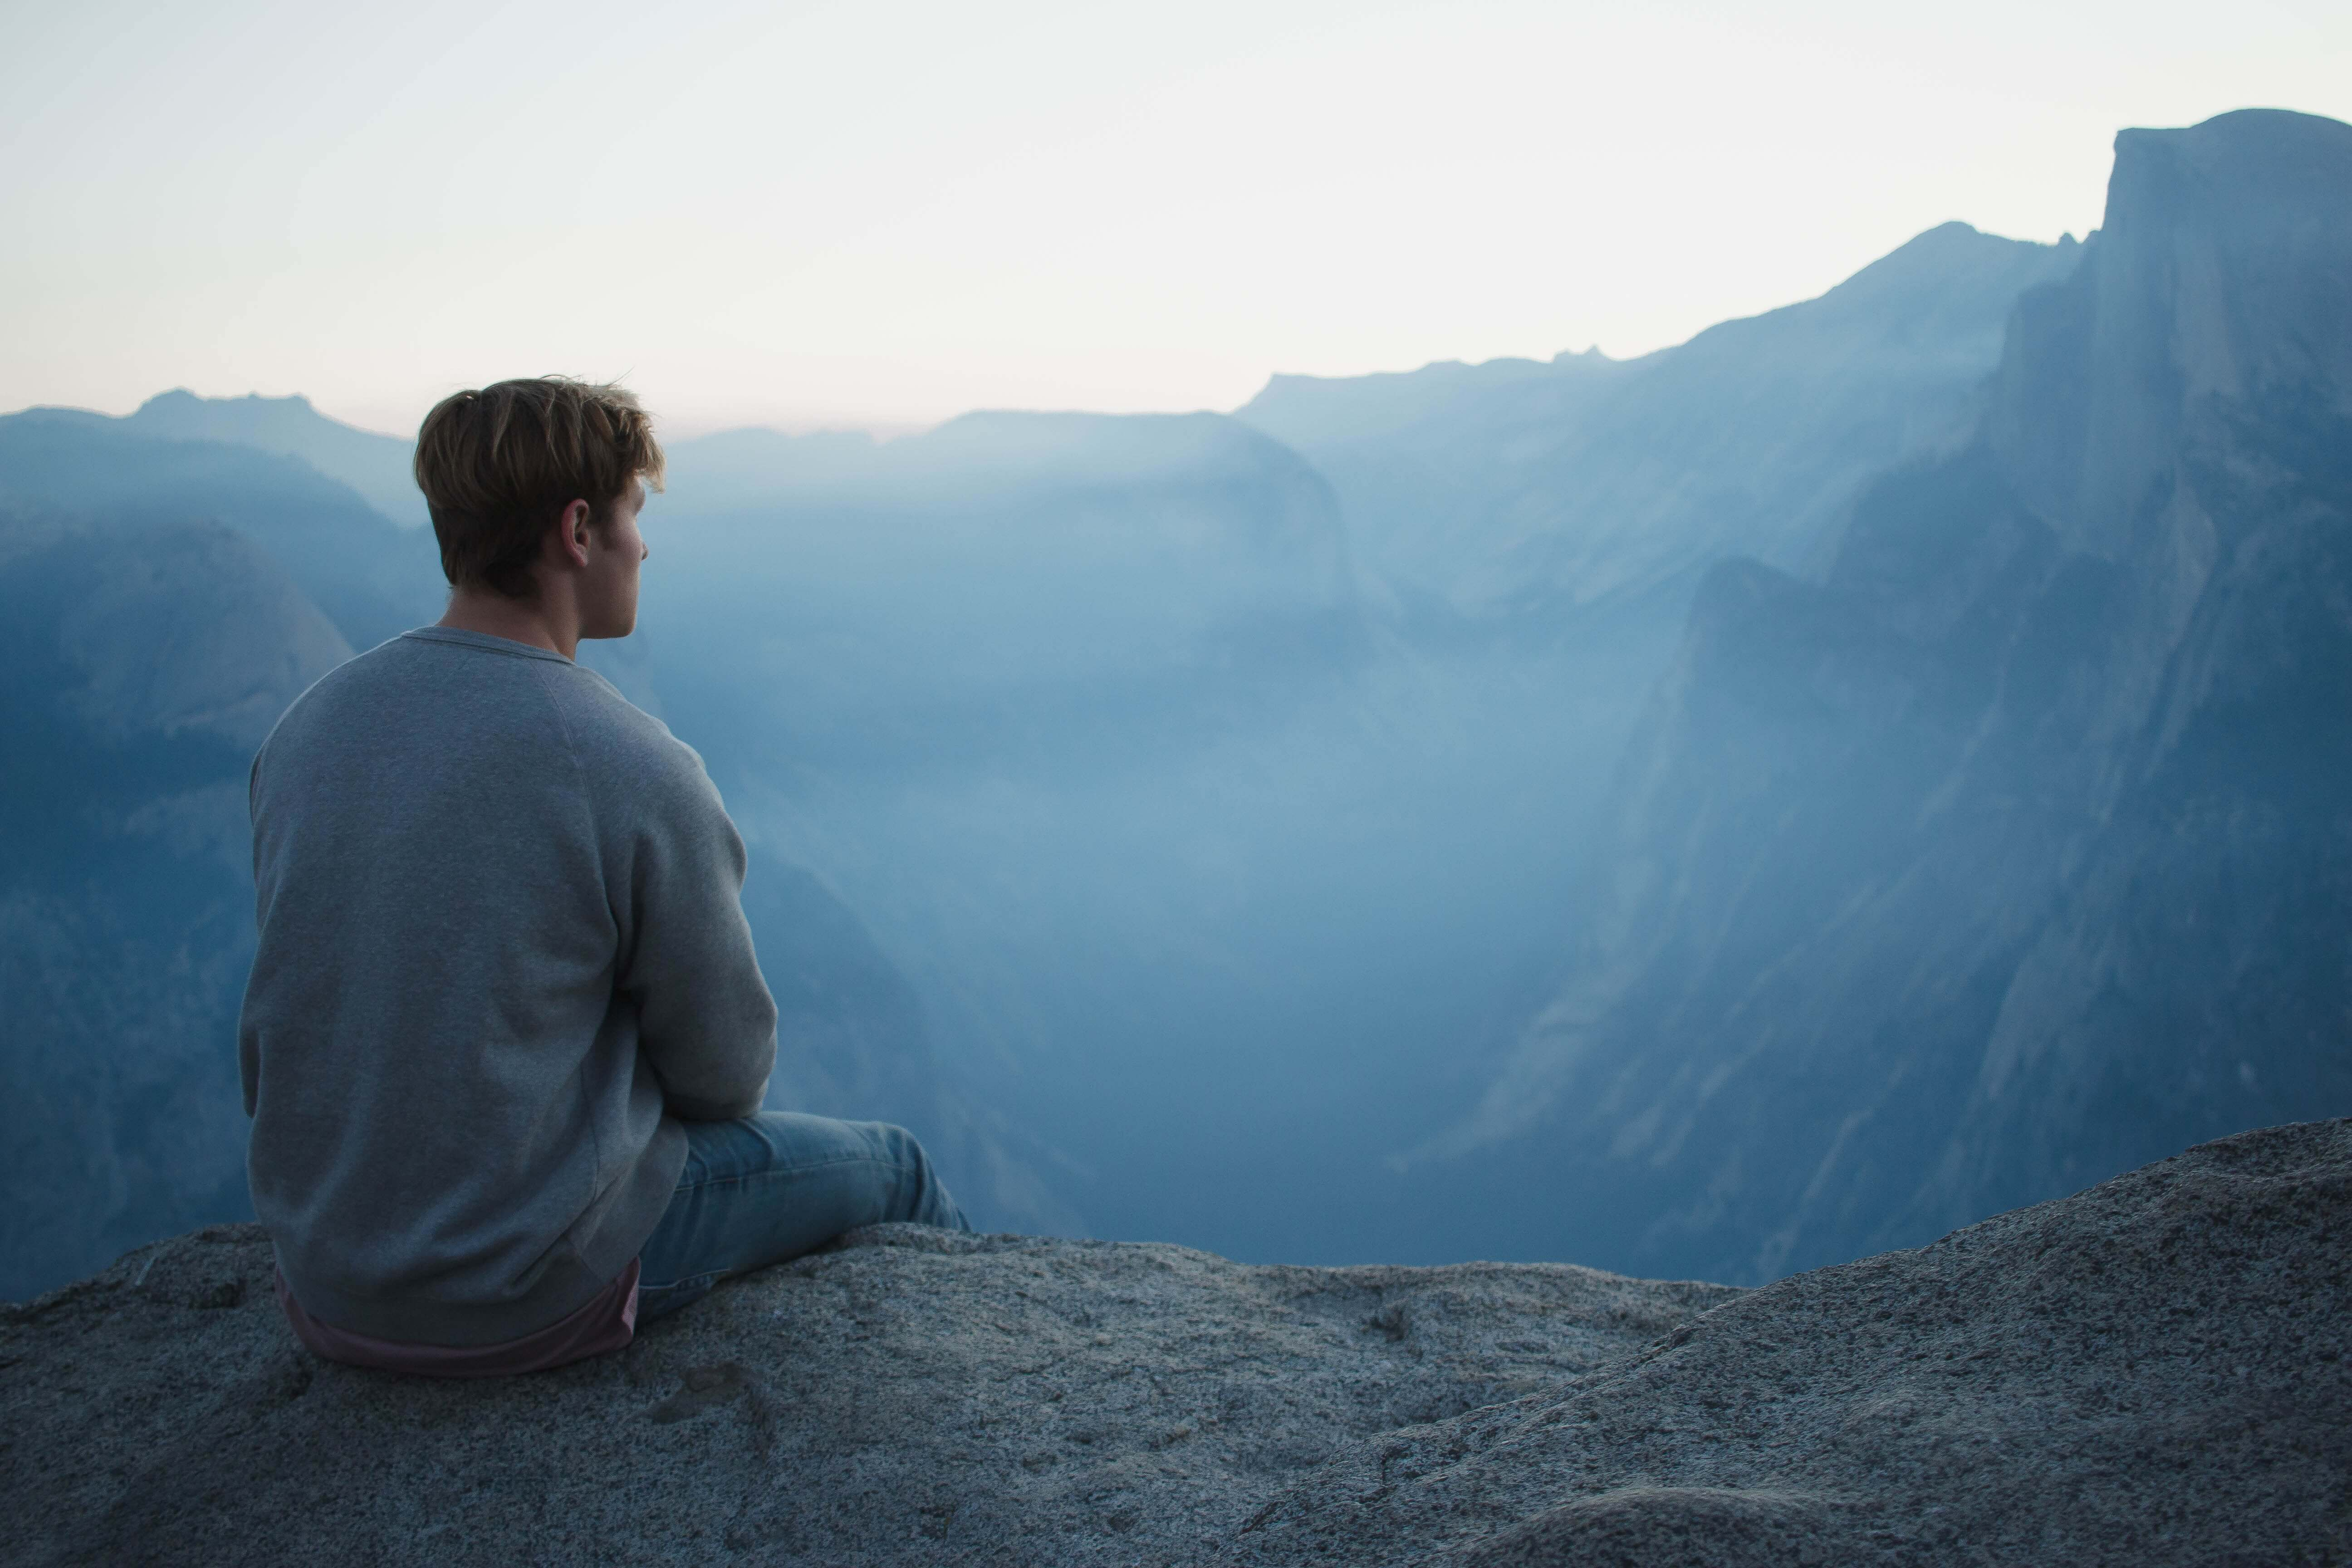 man looking out over land scape